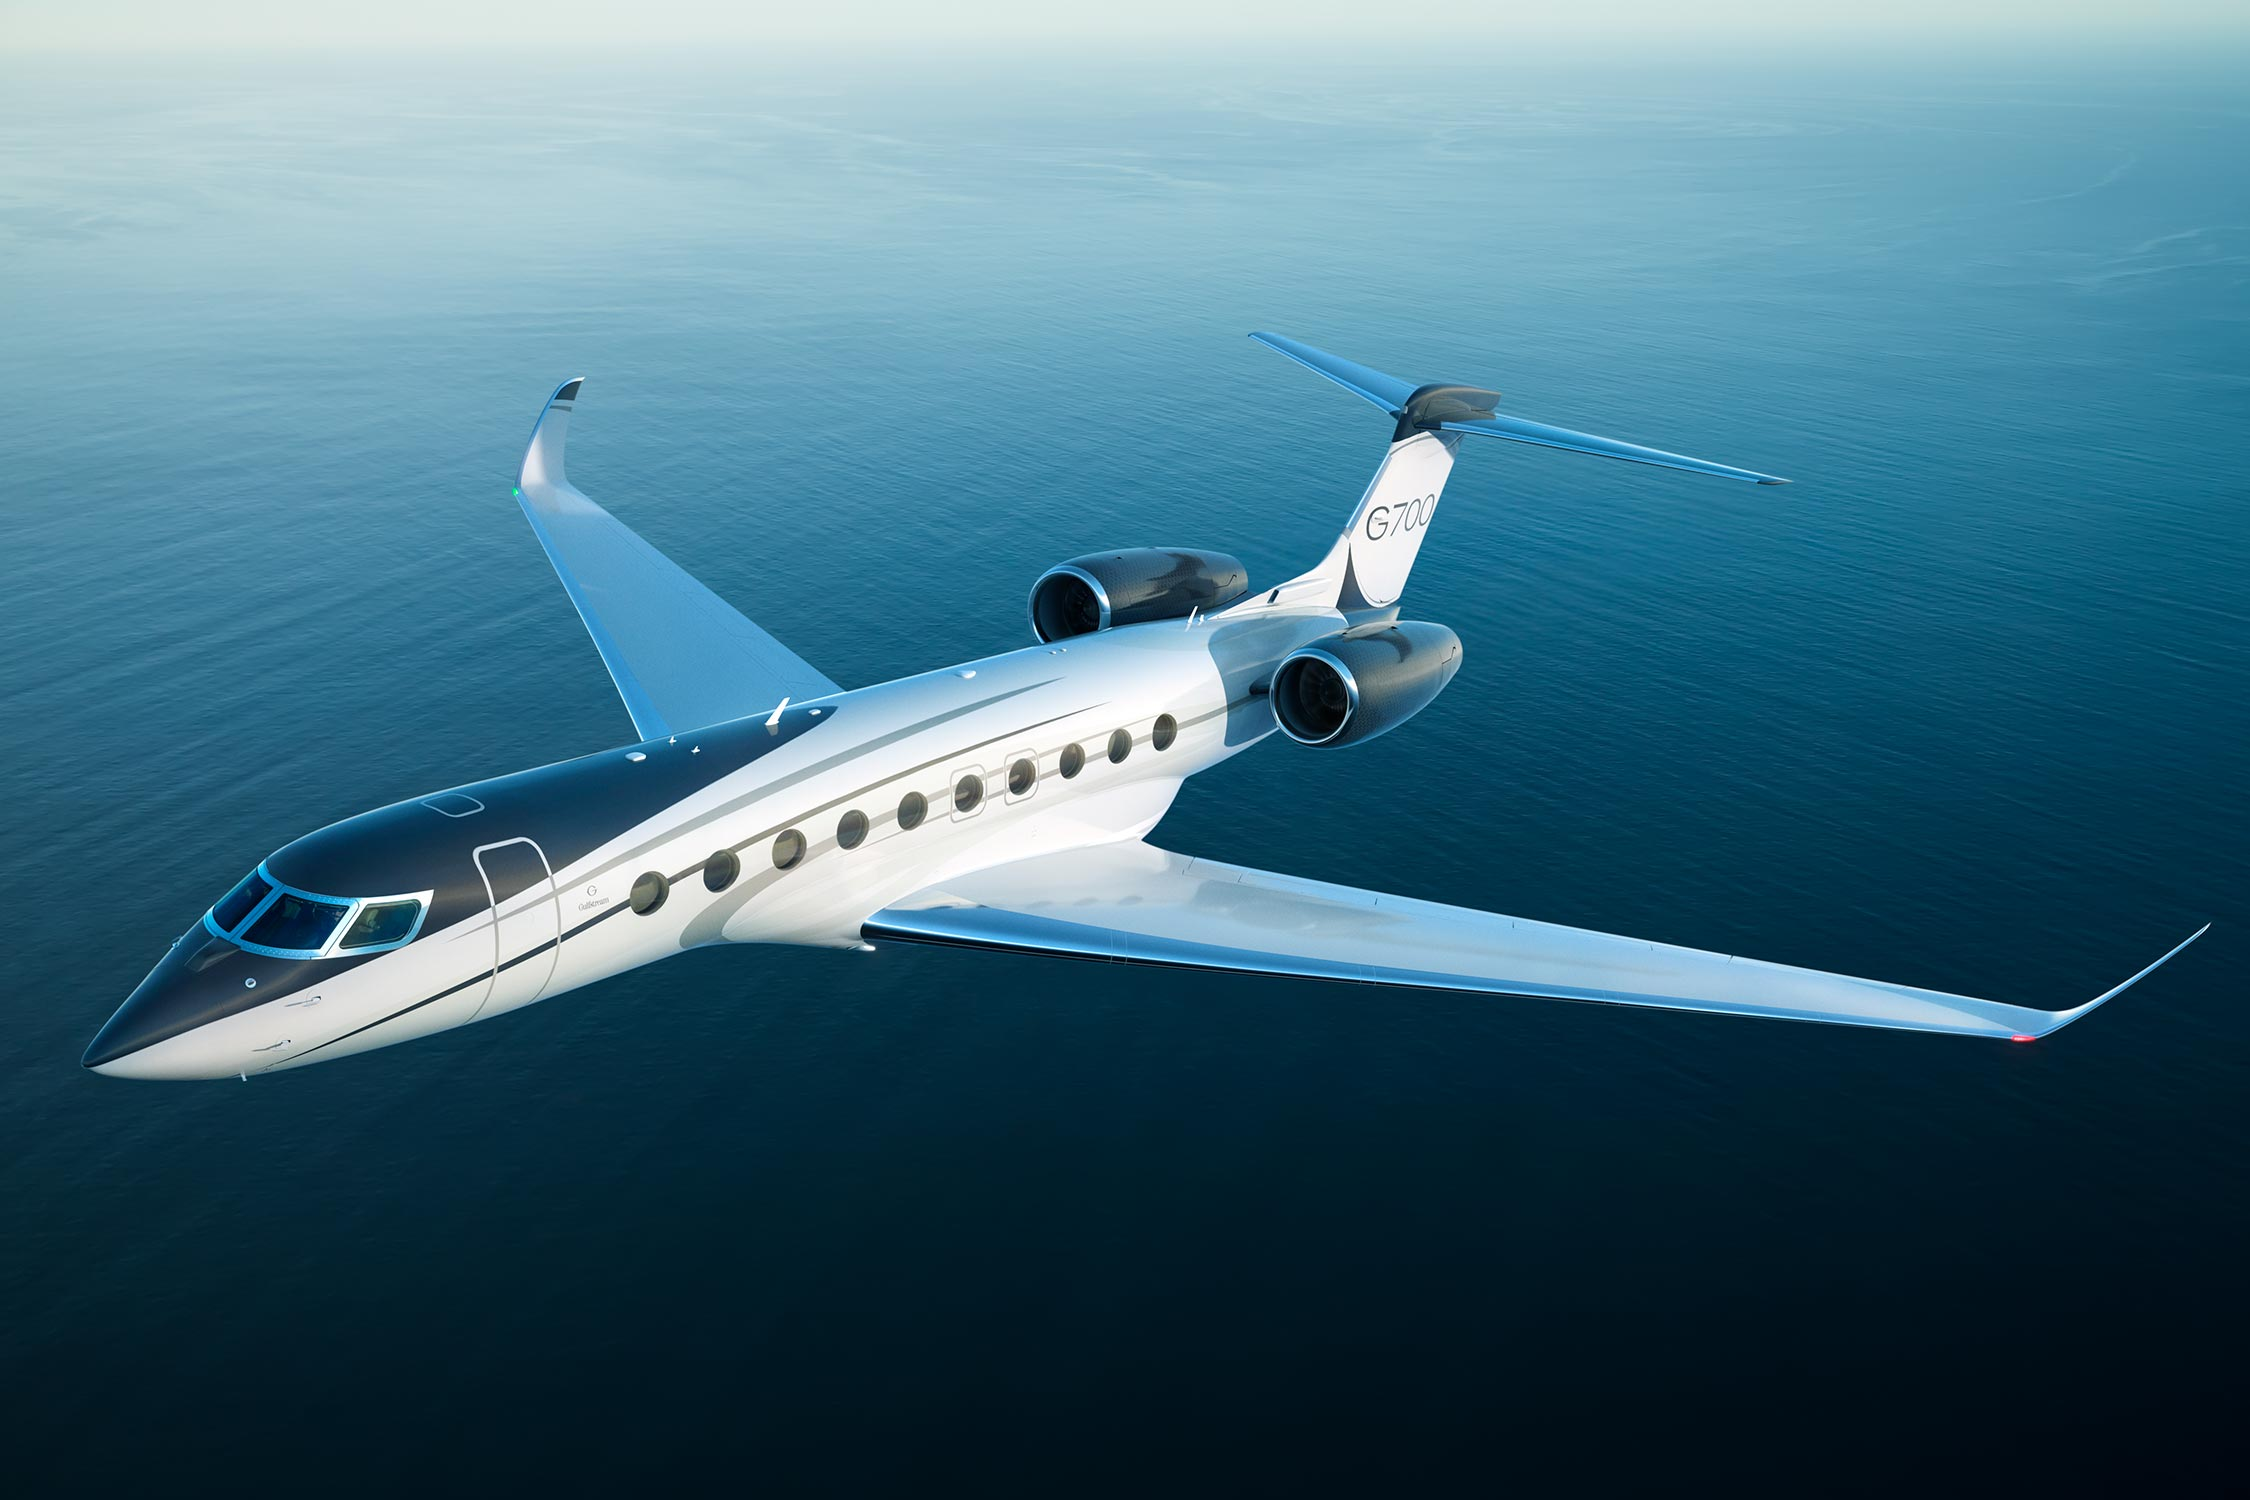 G700 flying over blue water